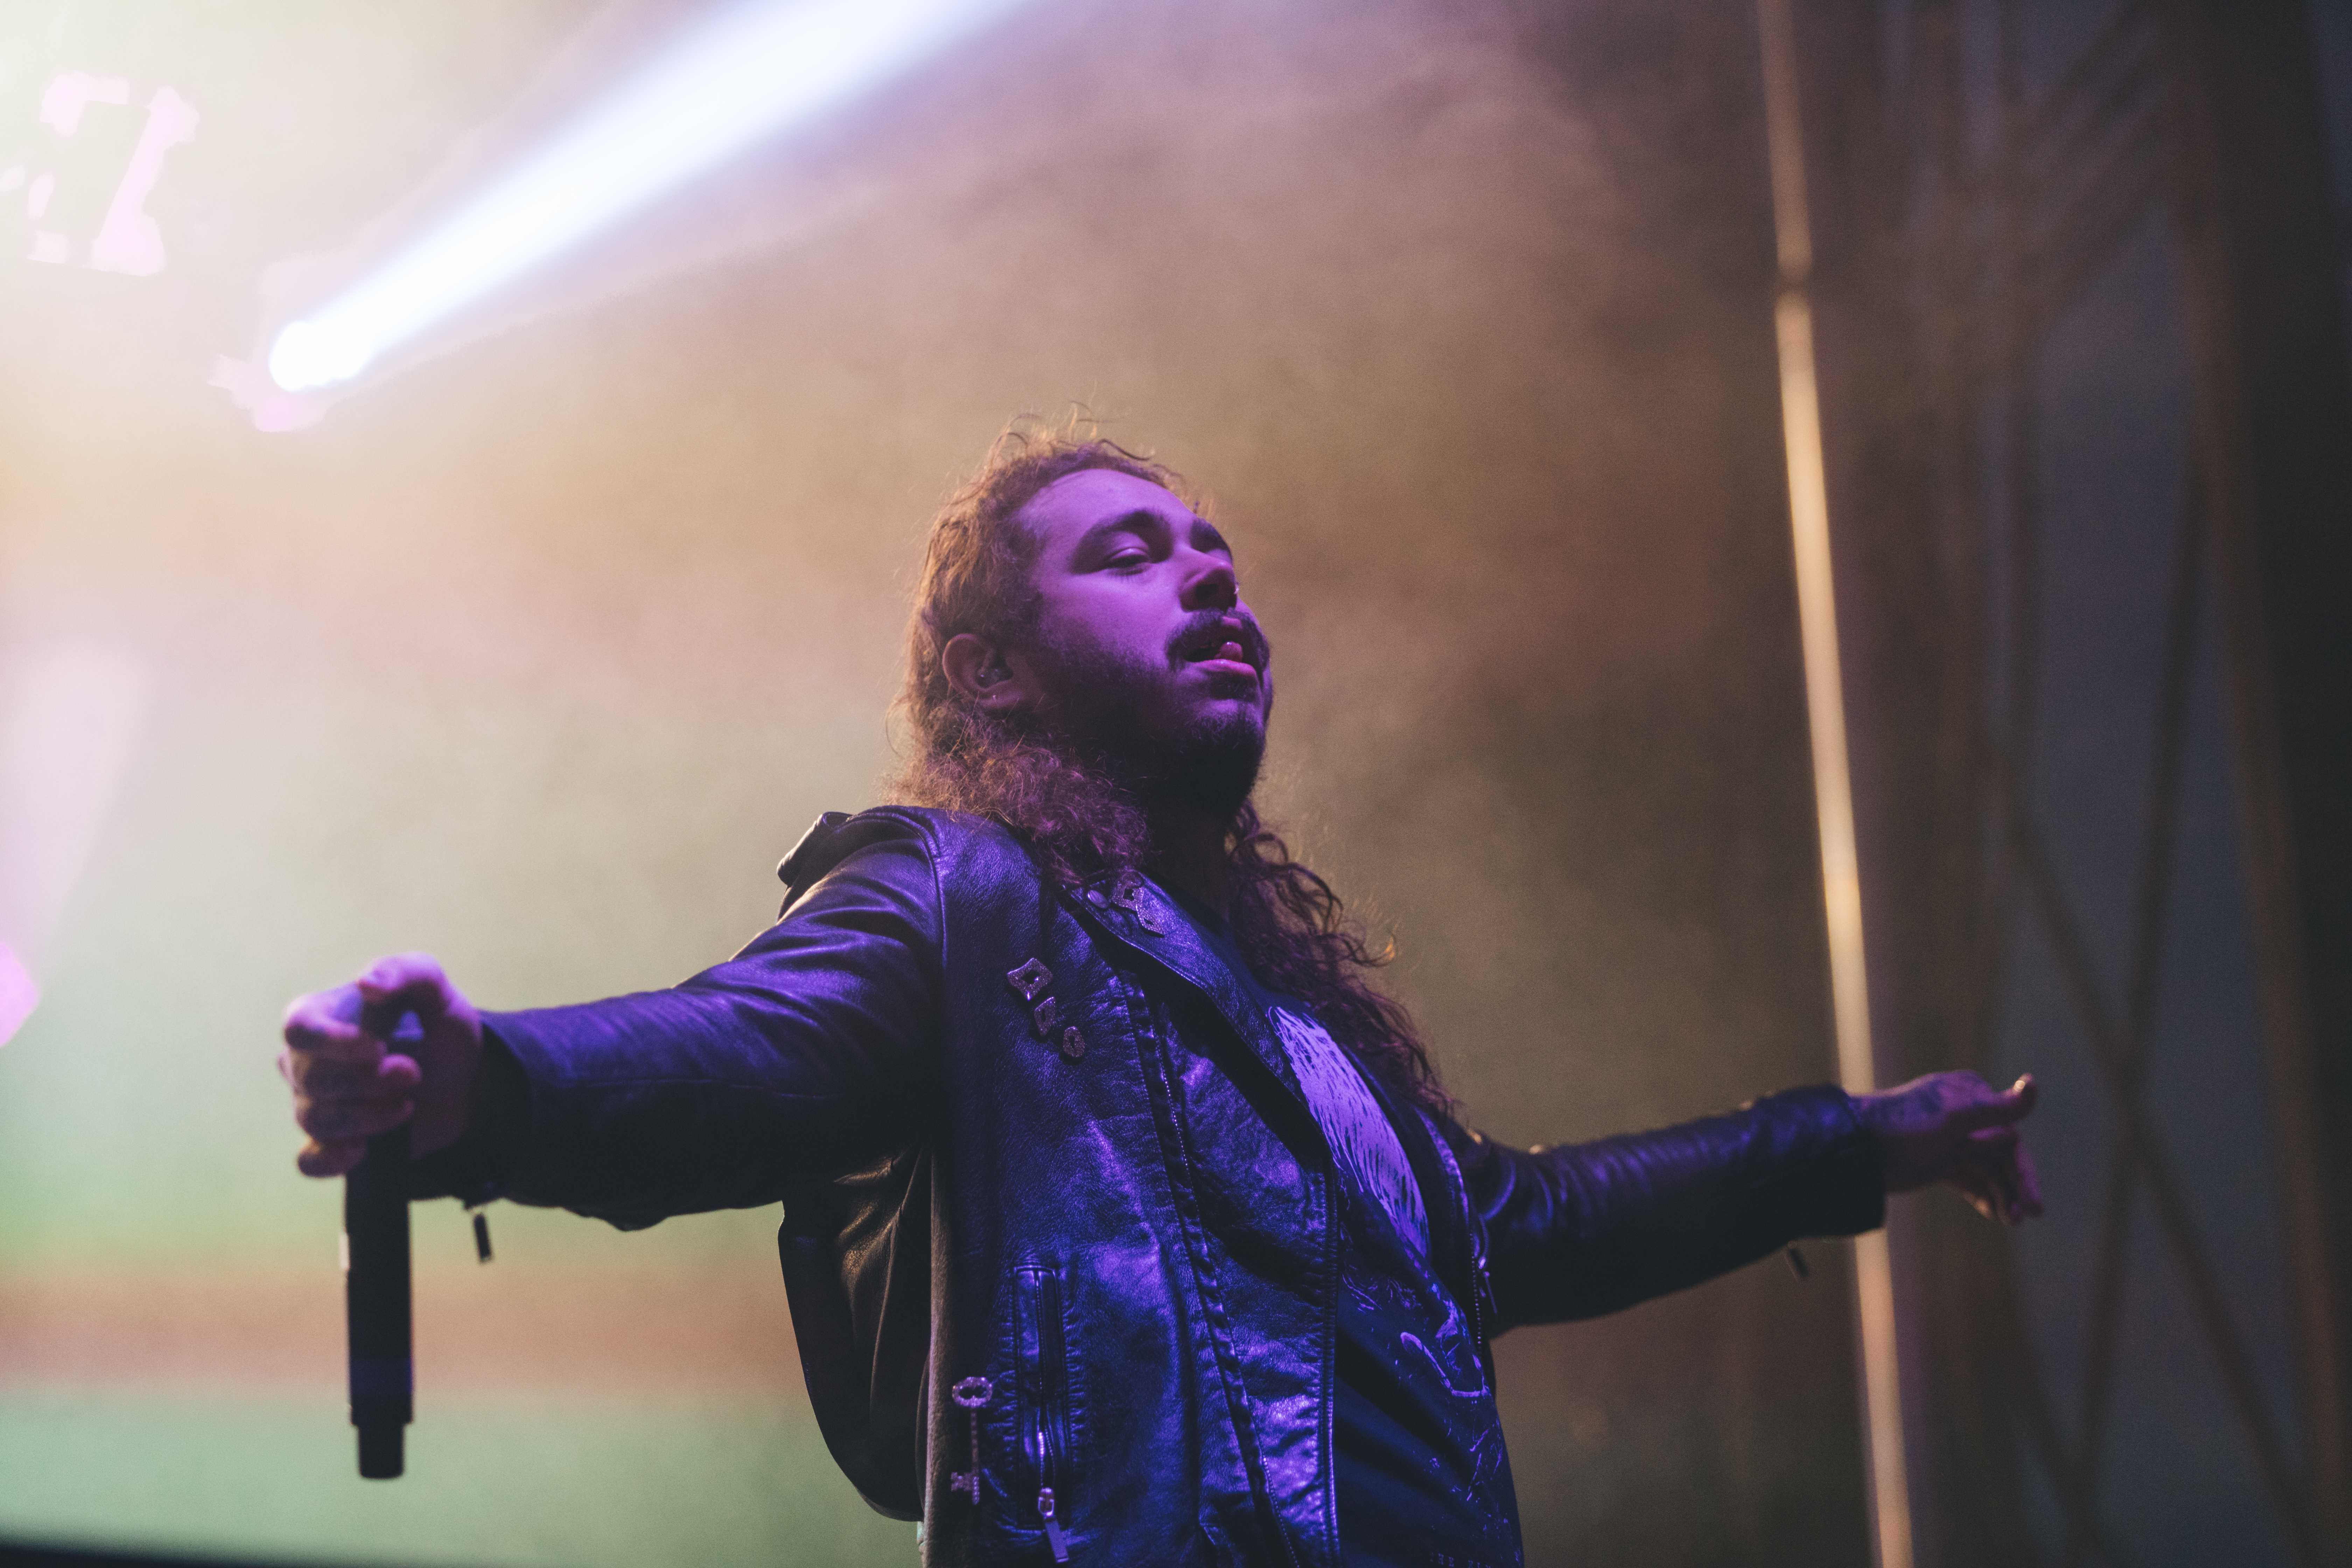 Post+Malone+performed+on+a+day+two+of+North+Coast.+%28Josh+Leff%2C+The+DePaulia%29